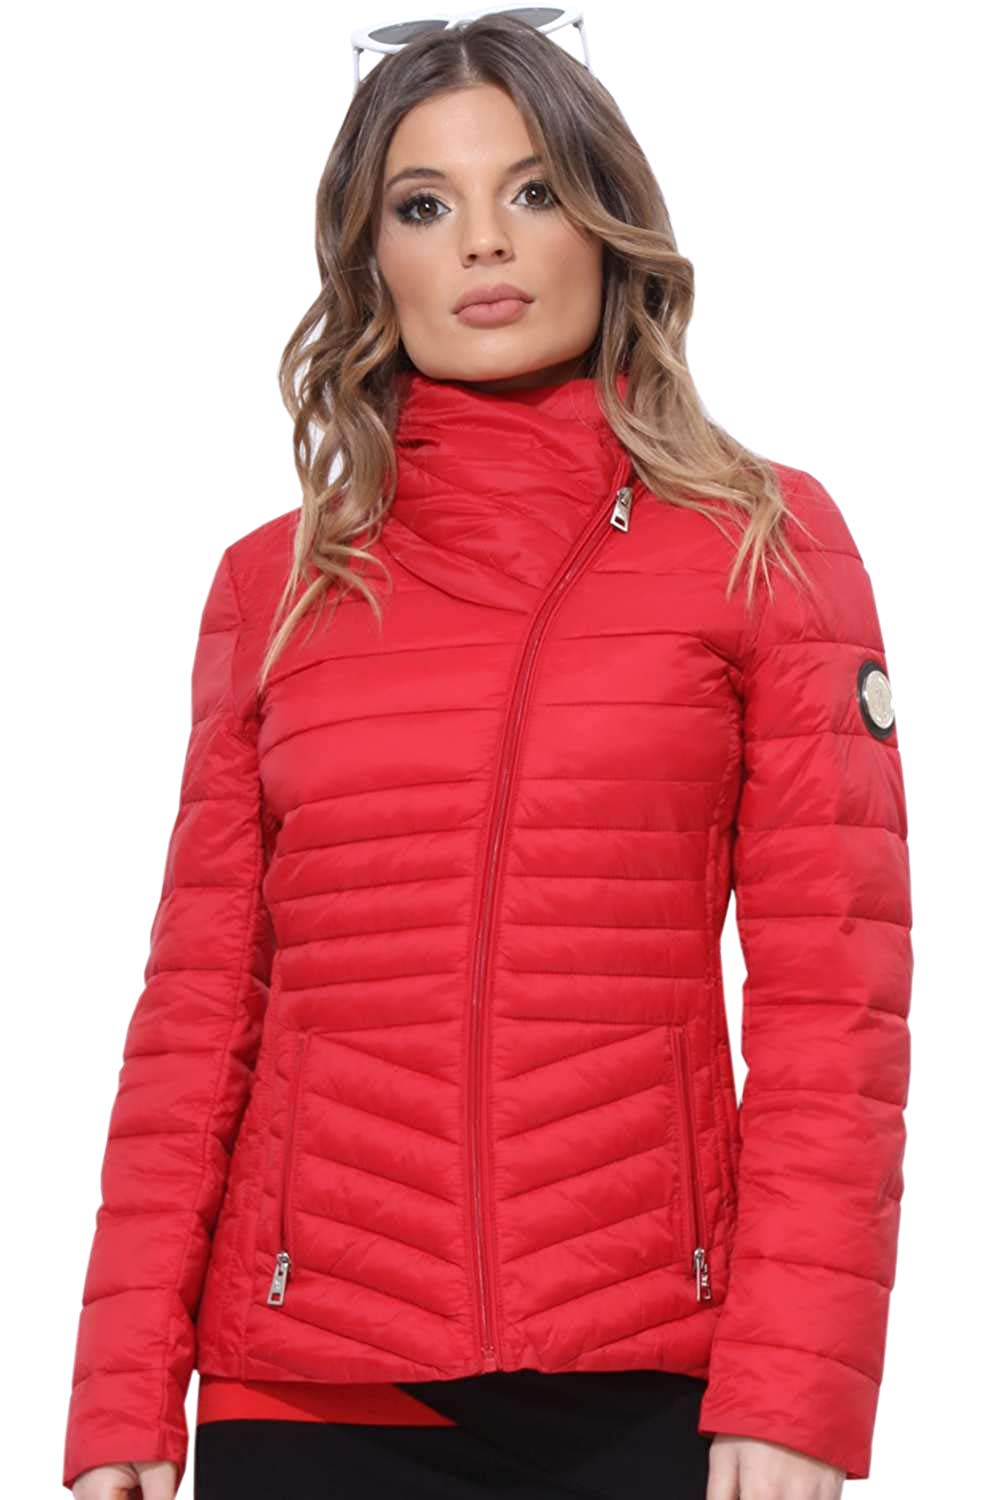 Amnesia (Red, Medium) Lightweight Ladies Jacket, Quilted Spring Puffer Padded Jacket with Diagonal Zip in Black, Red and White